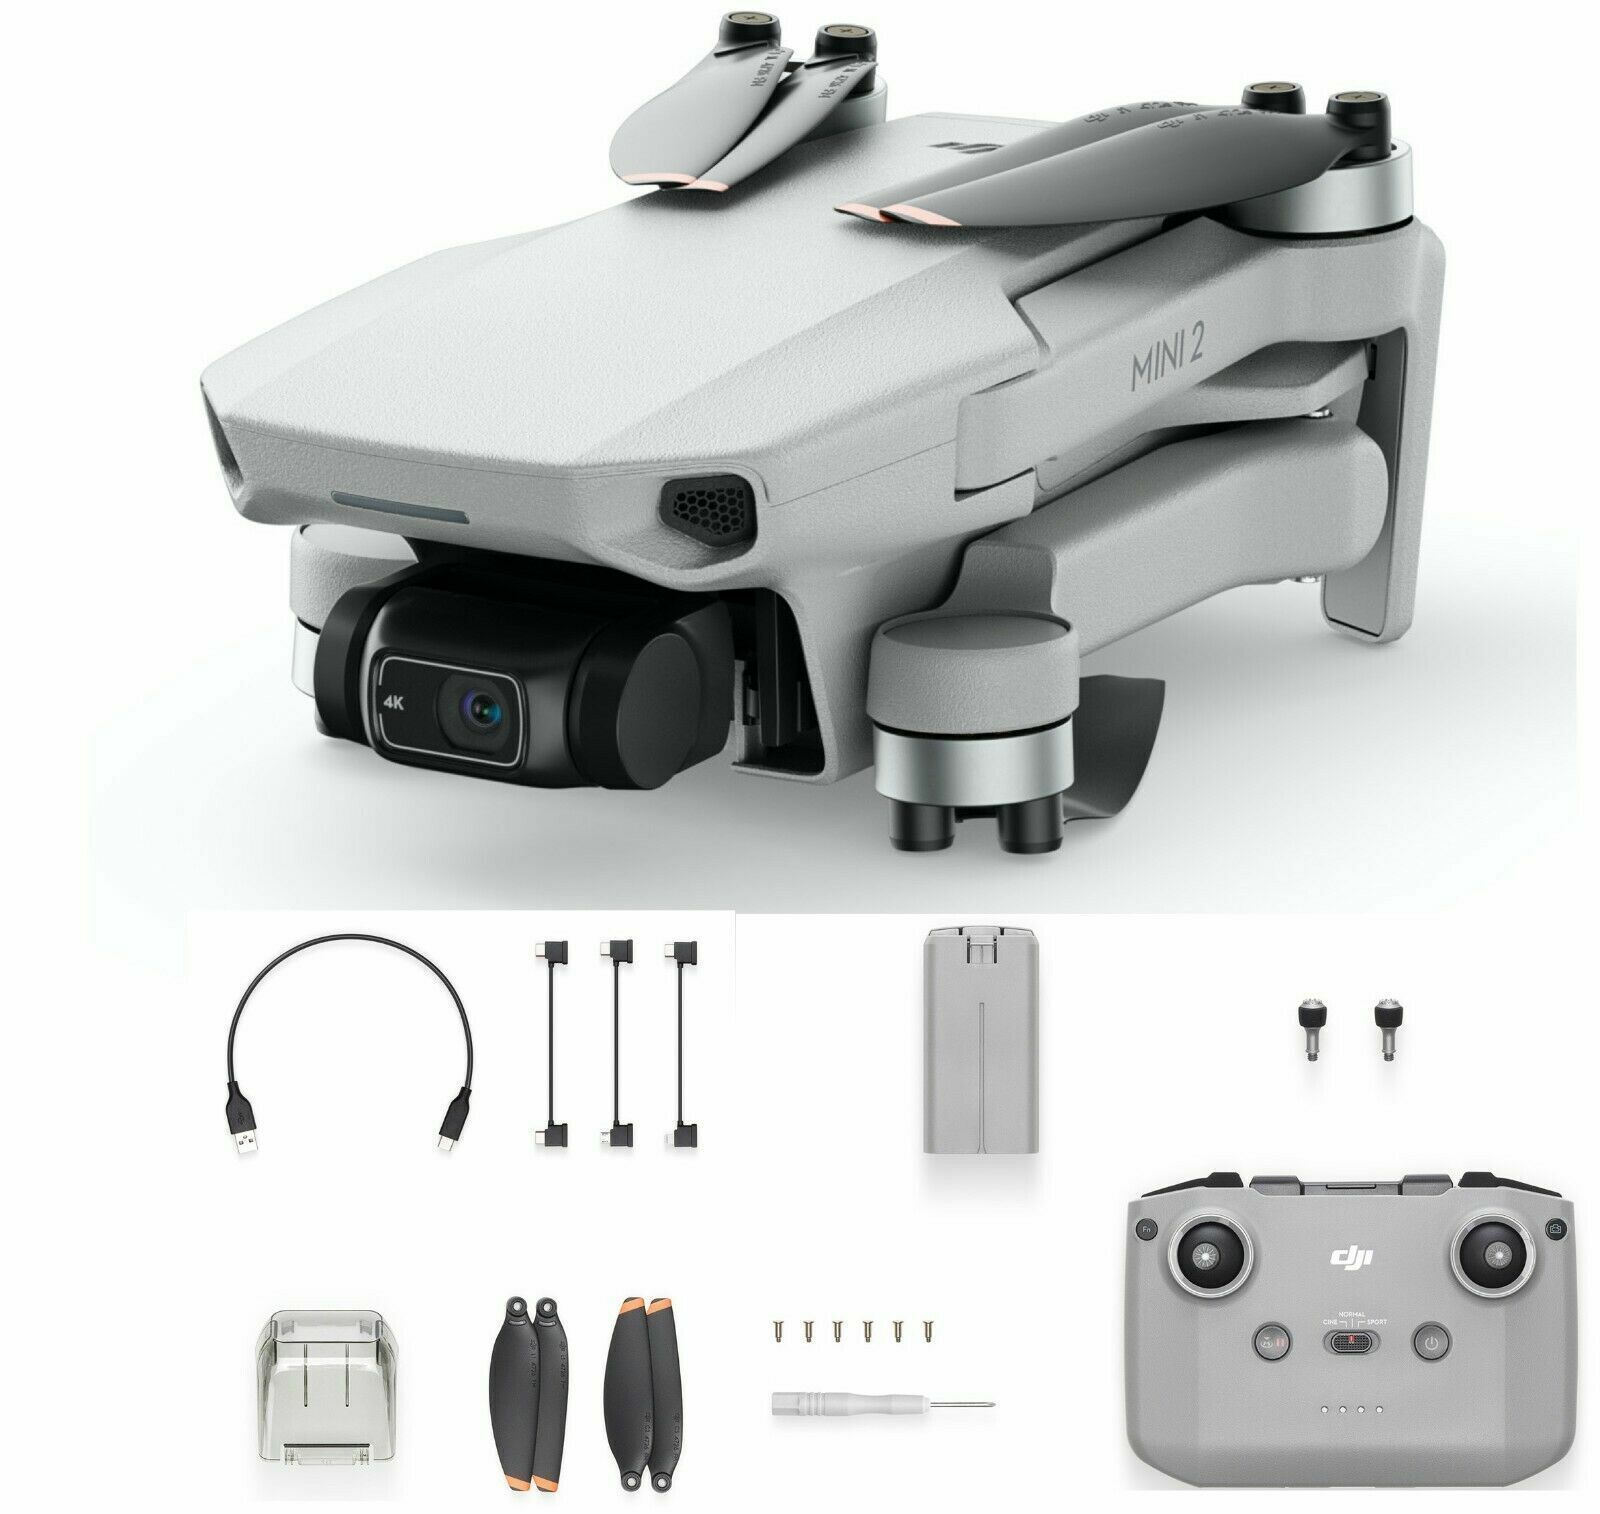 Details about DJI Mini 2 Drone Ready To Fly